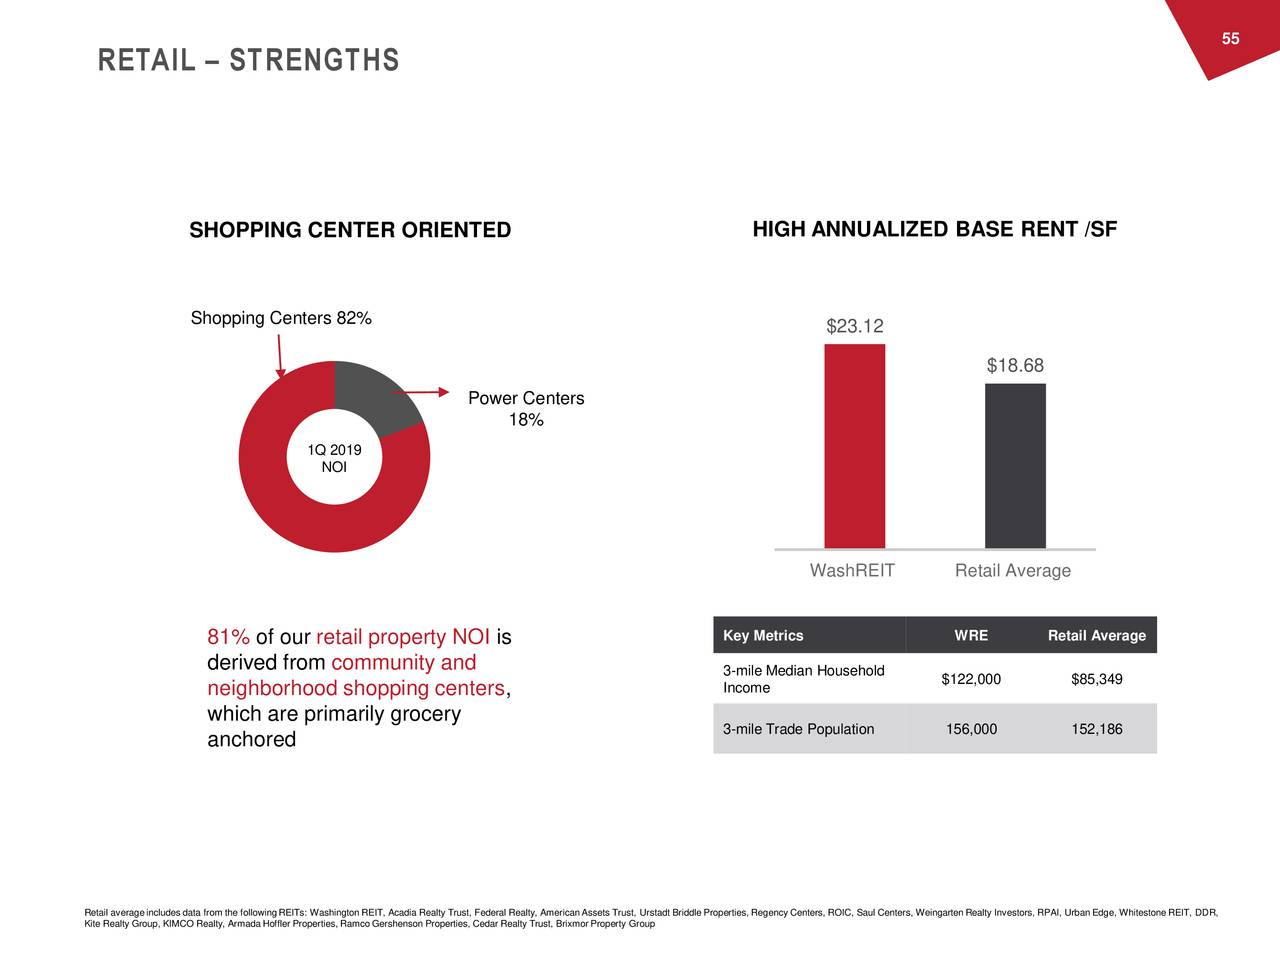 RETAIL – STRENGTHS SHOPPING CENTER ORIENTED HIGH ANNUALIZED BASE RENT /SF Shopping Centers 82% $23.12 $18.68 Power Centers 18% 1Q 2019 NOI WashREIT Retail Average 81% of our retail property NOI is Key Metrics WRE Retail Average derived from community and 3-mile Median Household neighborhood shopping centers, Income $122,000 $85,349 which are primarily grocery anchored 3-mile Trade Population 156,000 152,186 Retail average includes data from the following REITs: Washington REIT, Acadia Realty Trust, Federal Realty, American Assets Trust, Urstadt Briddle Properties, Regency Centers, ROIC, Saul Centers, Weingarten Realty Investors, RPAI, Urban Edge, Whitestone REIT, DDR, Kite Realty Group, KIMCO Realty, Armada Hoffler Properties, Ramco Gershenson Properties, Cedar Realty Trust, Brixmor Property Group